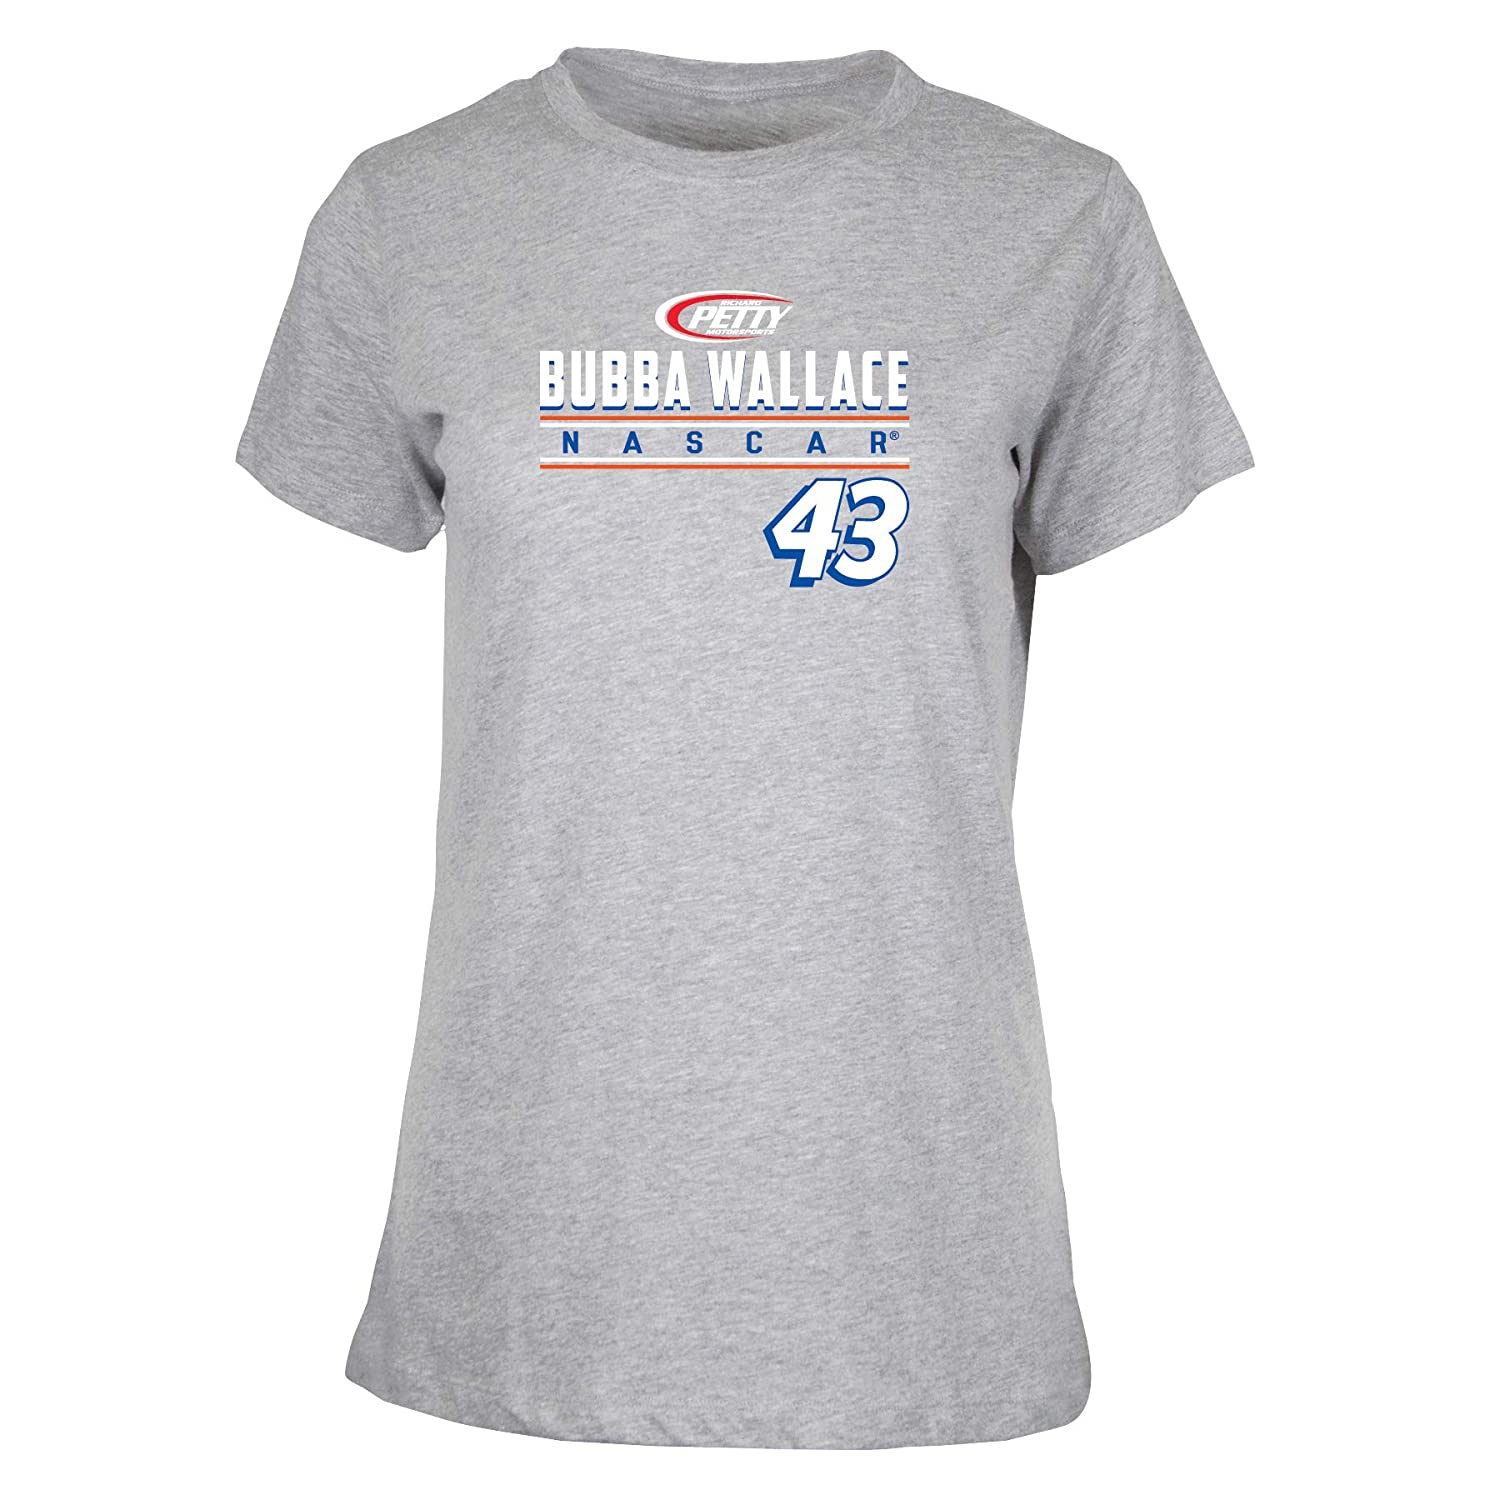 Small NASCAR Richard Petty Motorsports Bubba Wallace Womens W Ouray S//S TW Ouray S//S T Premium Heather